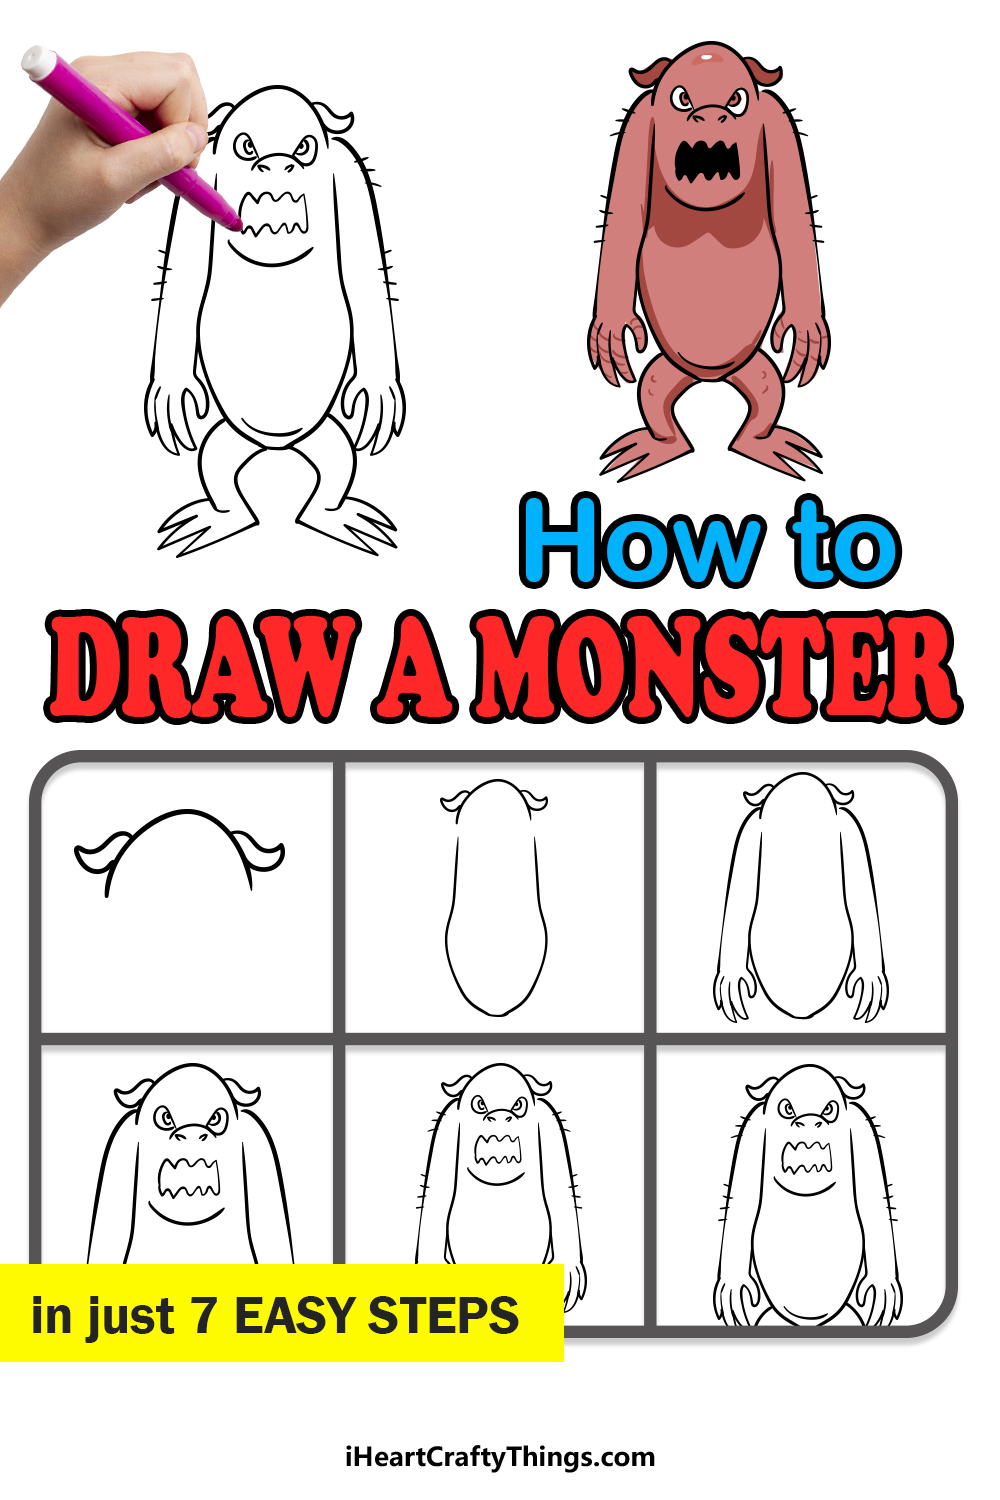 how to draw a monster in 7 easy steps